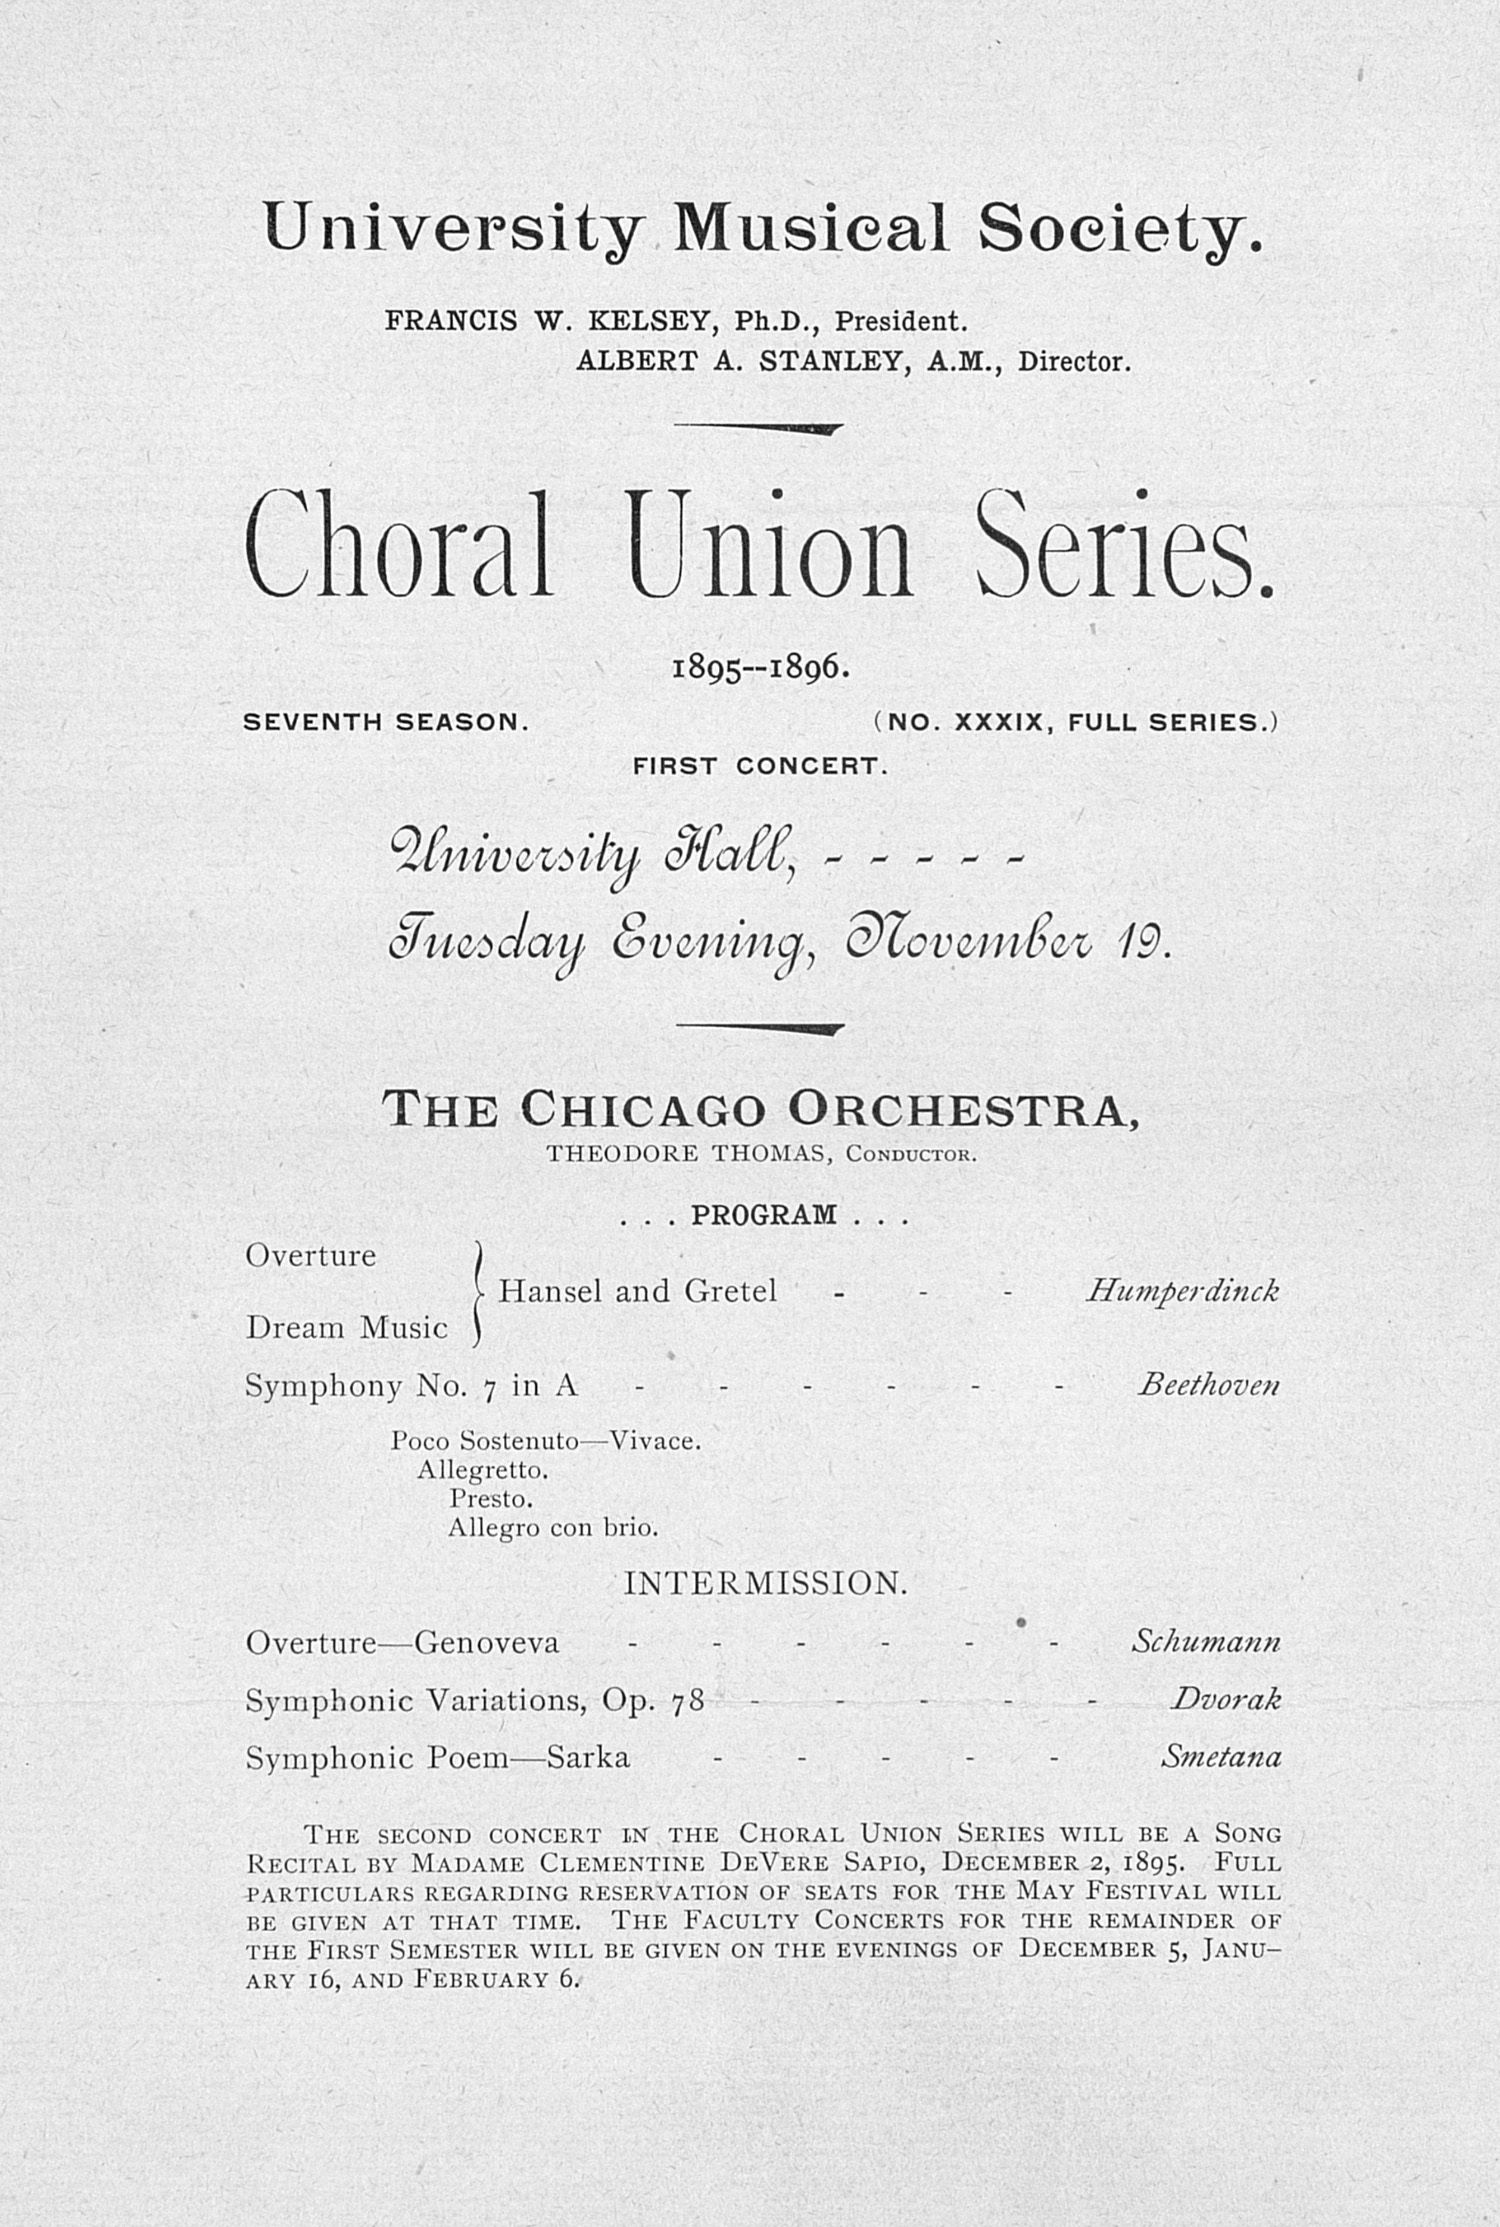 UMS Concert Program, November 19: Choral Union Series -- The Chicago Orchestra image